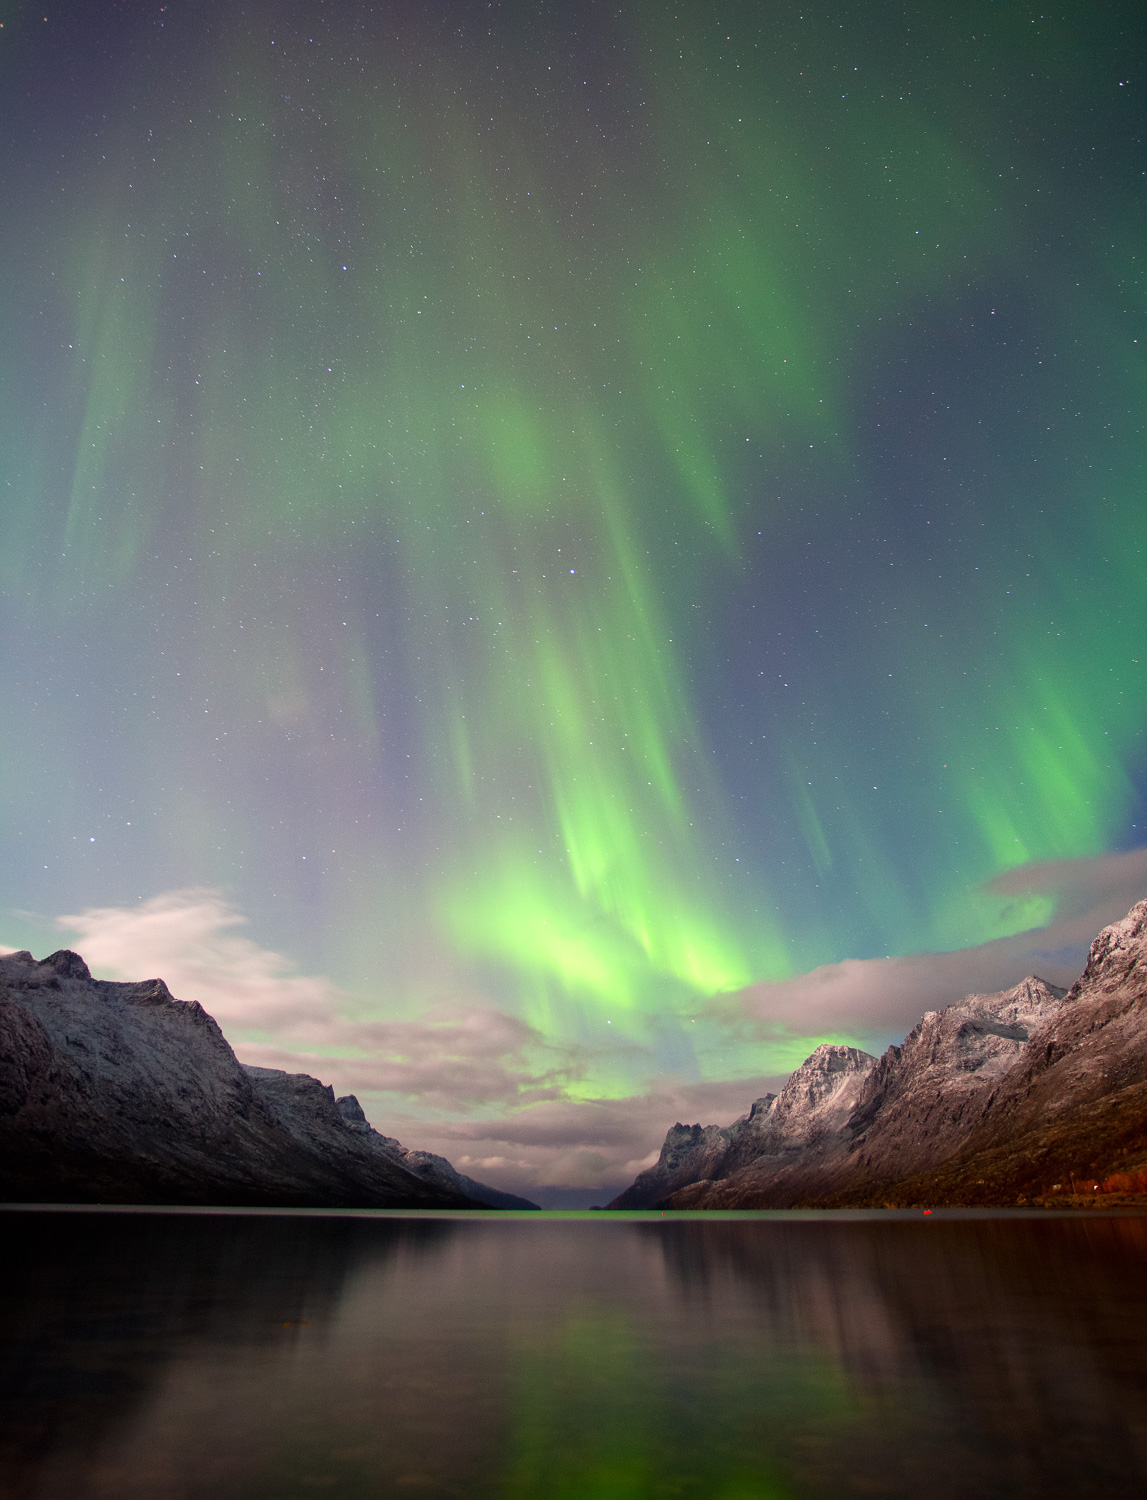 Nighttime photography 01 - northern lights over mountains and a lake